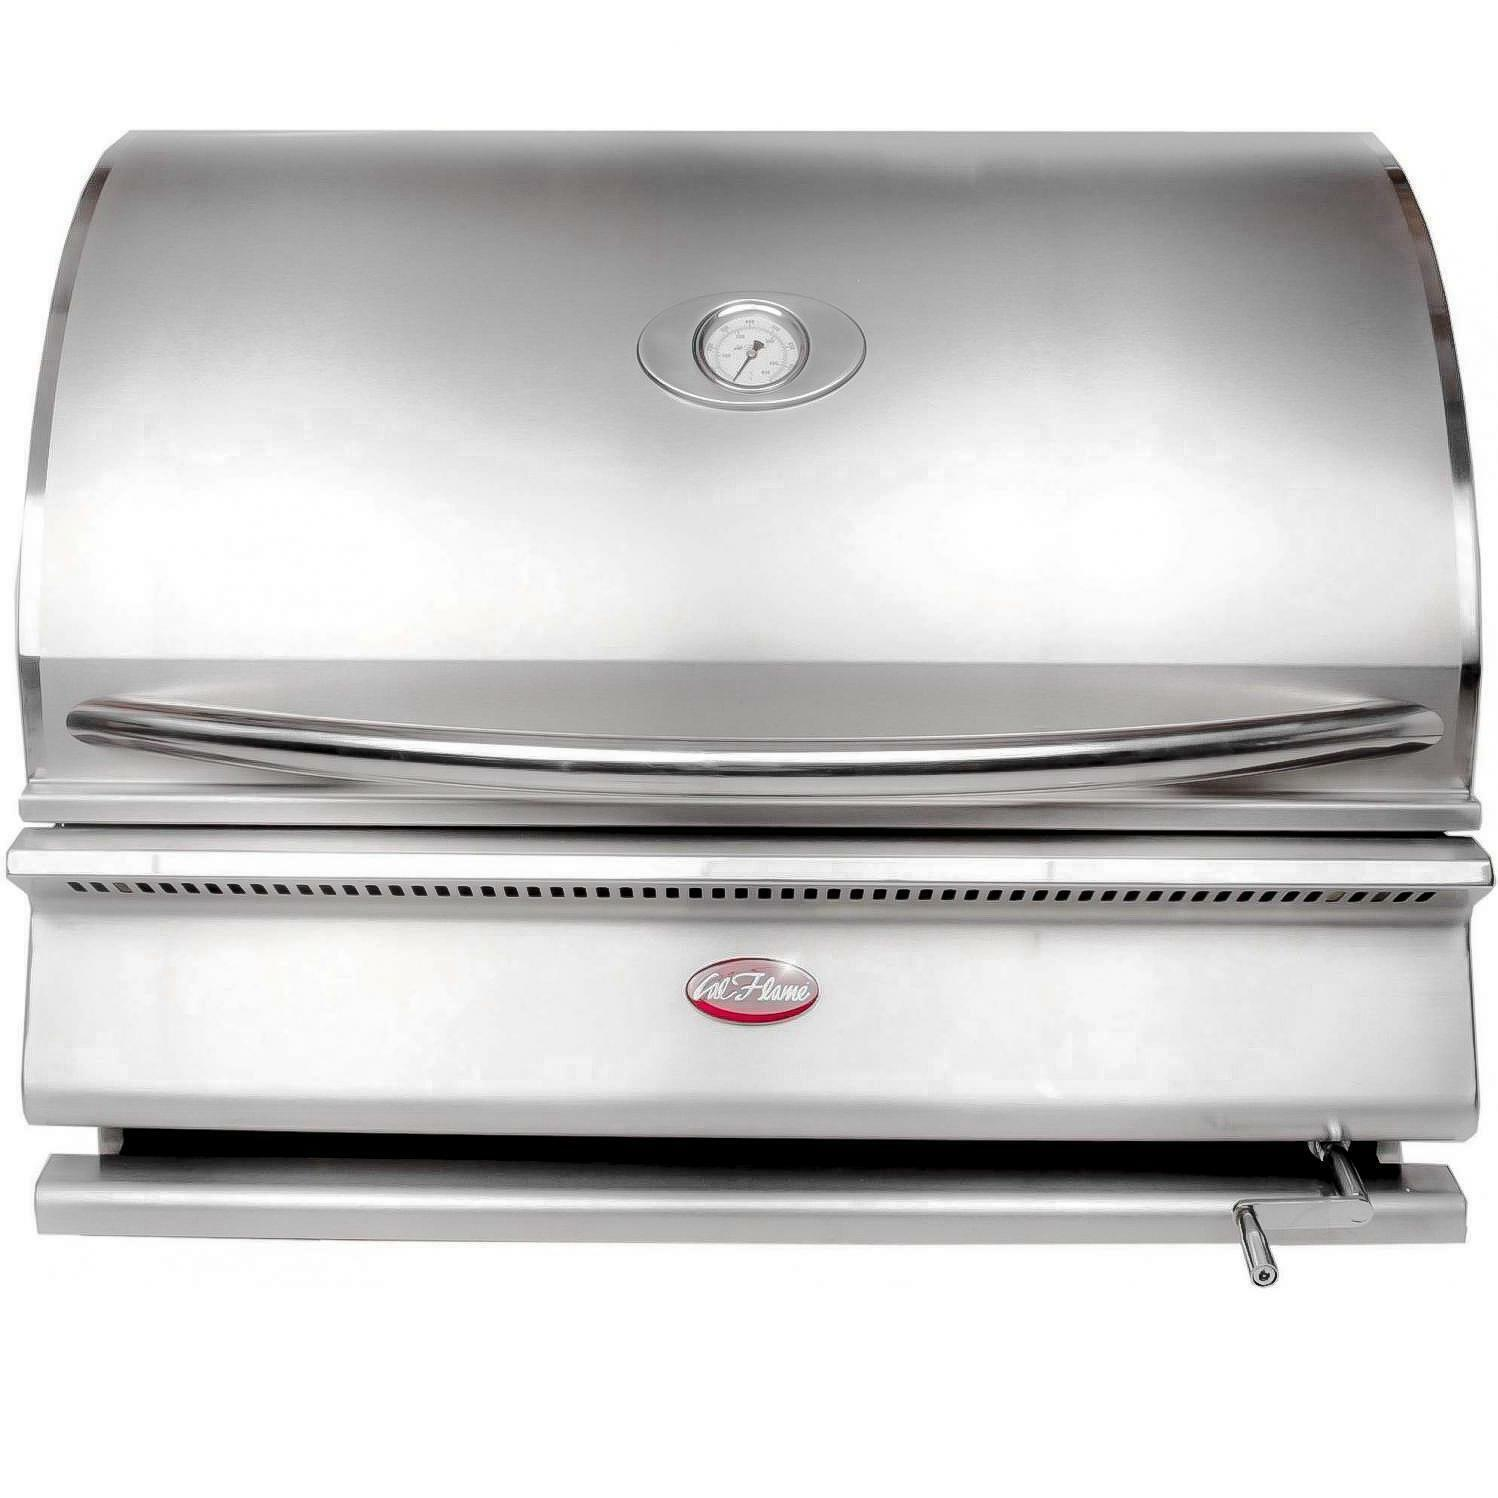 Cal Flame BBQ Built In Grills G Charcoal - LP BBQ18G870